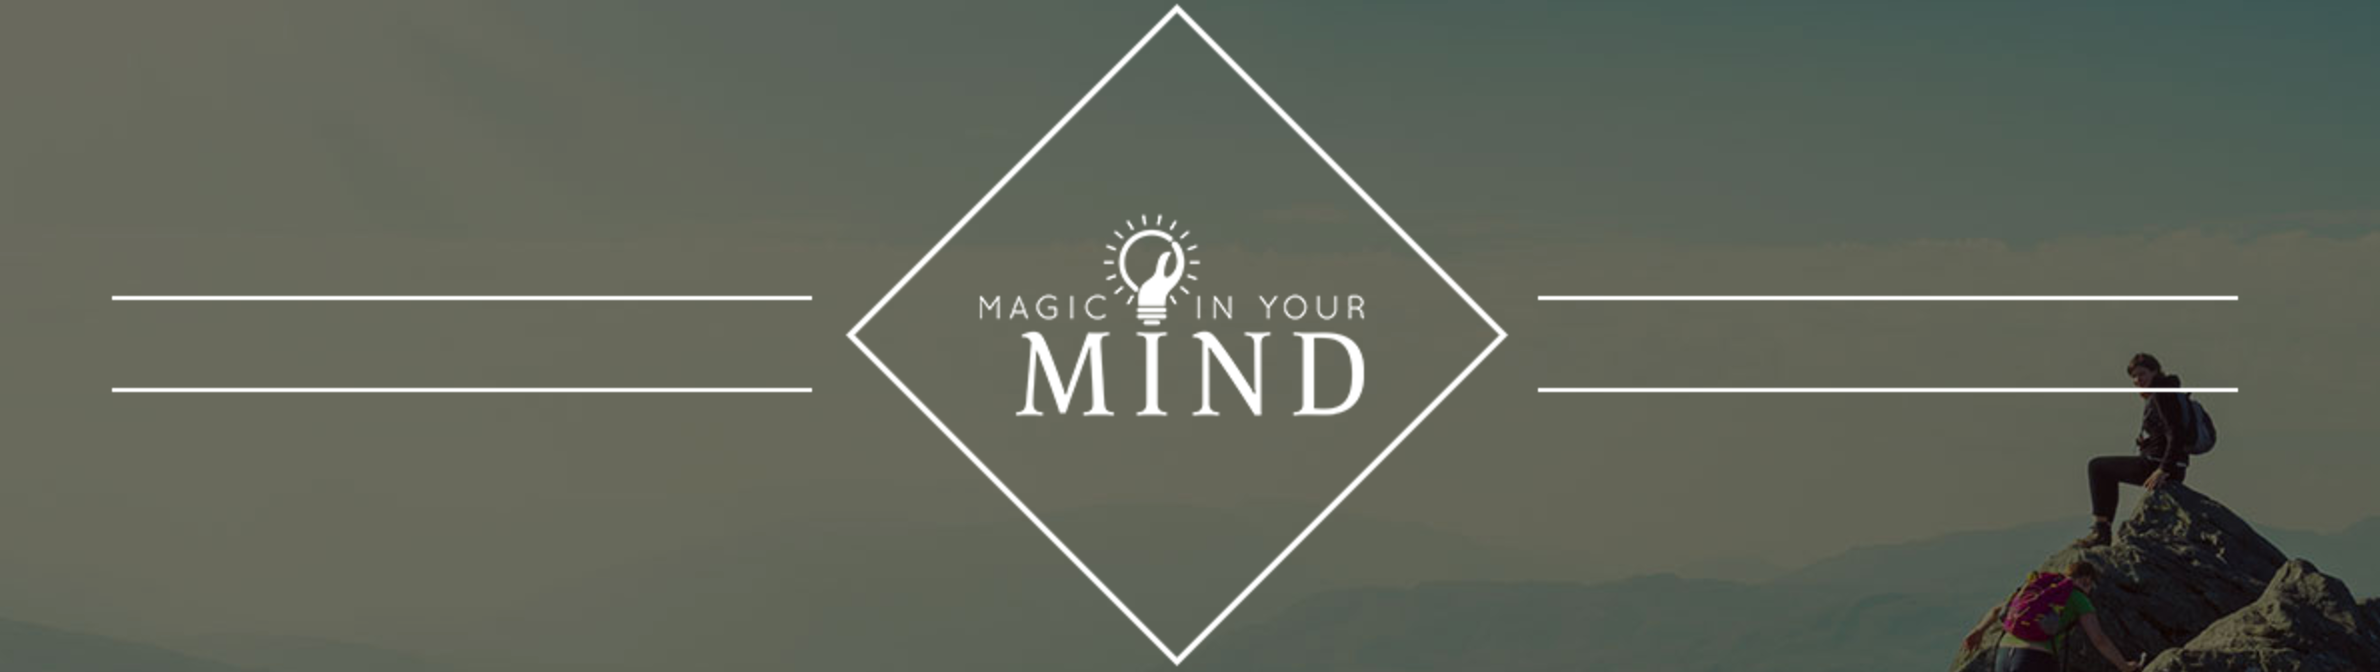 magic-in-your-mind-review-2